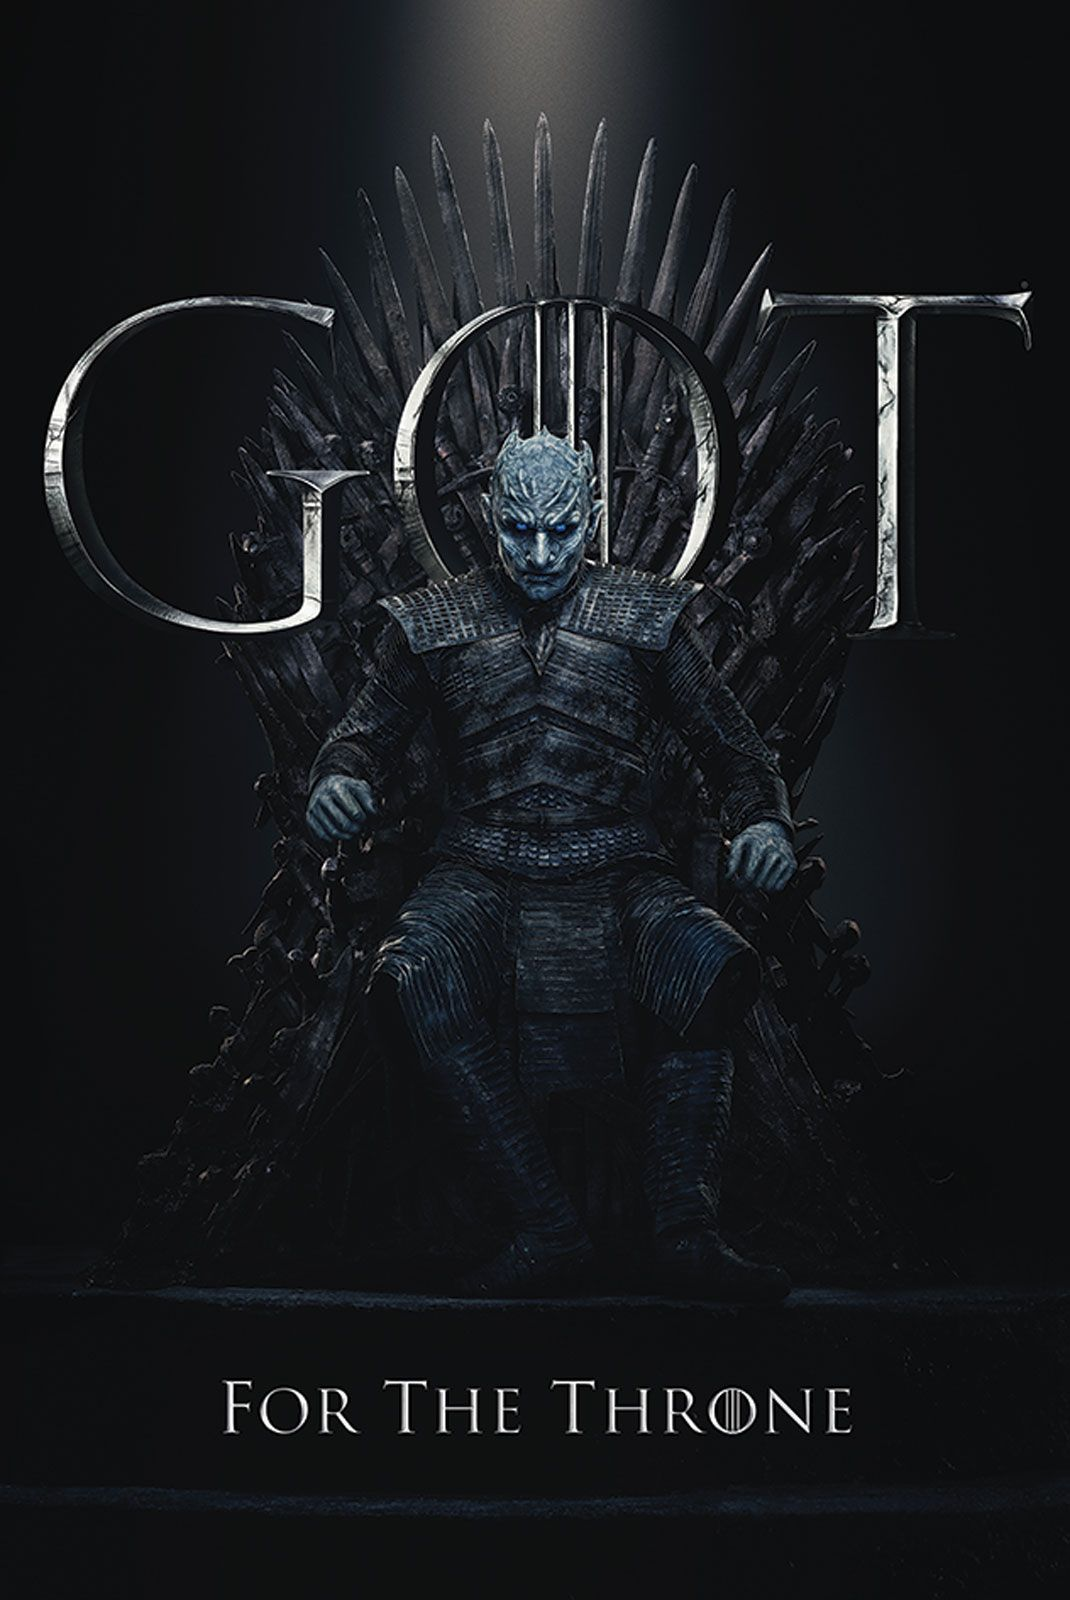 Game Of Thrones The Night King For The Throne Plakat